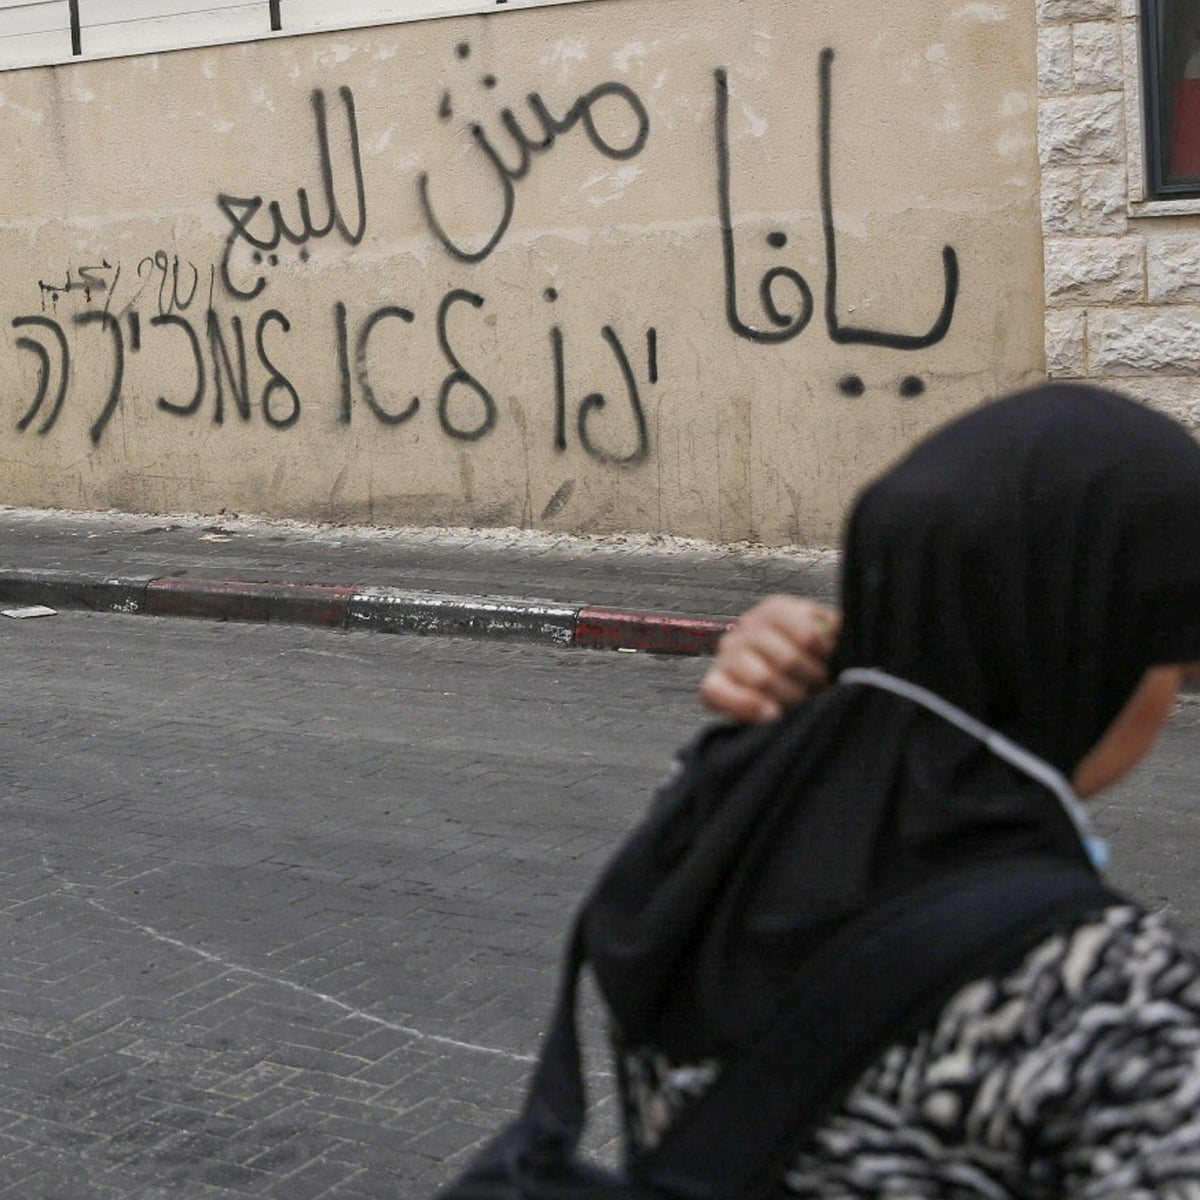 Graffiti in Jaffa reads 'Jaffa is not for sale,' two days ago.